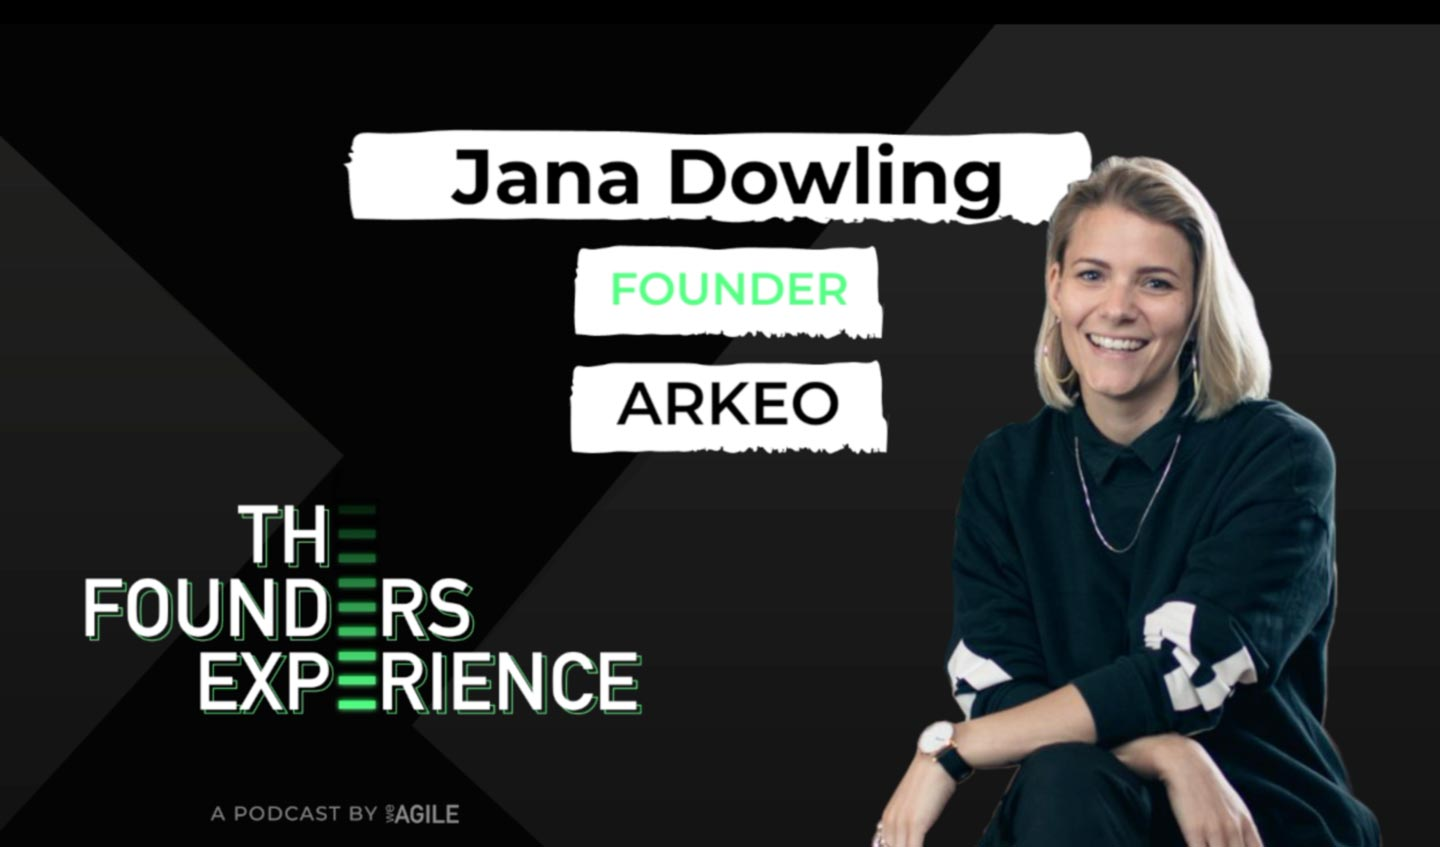 Jana Dowling Founder of Arkeo The Founders Experience Podcast